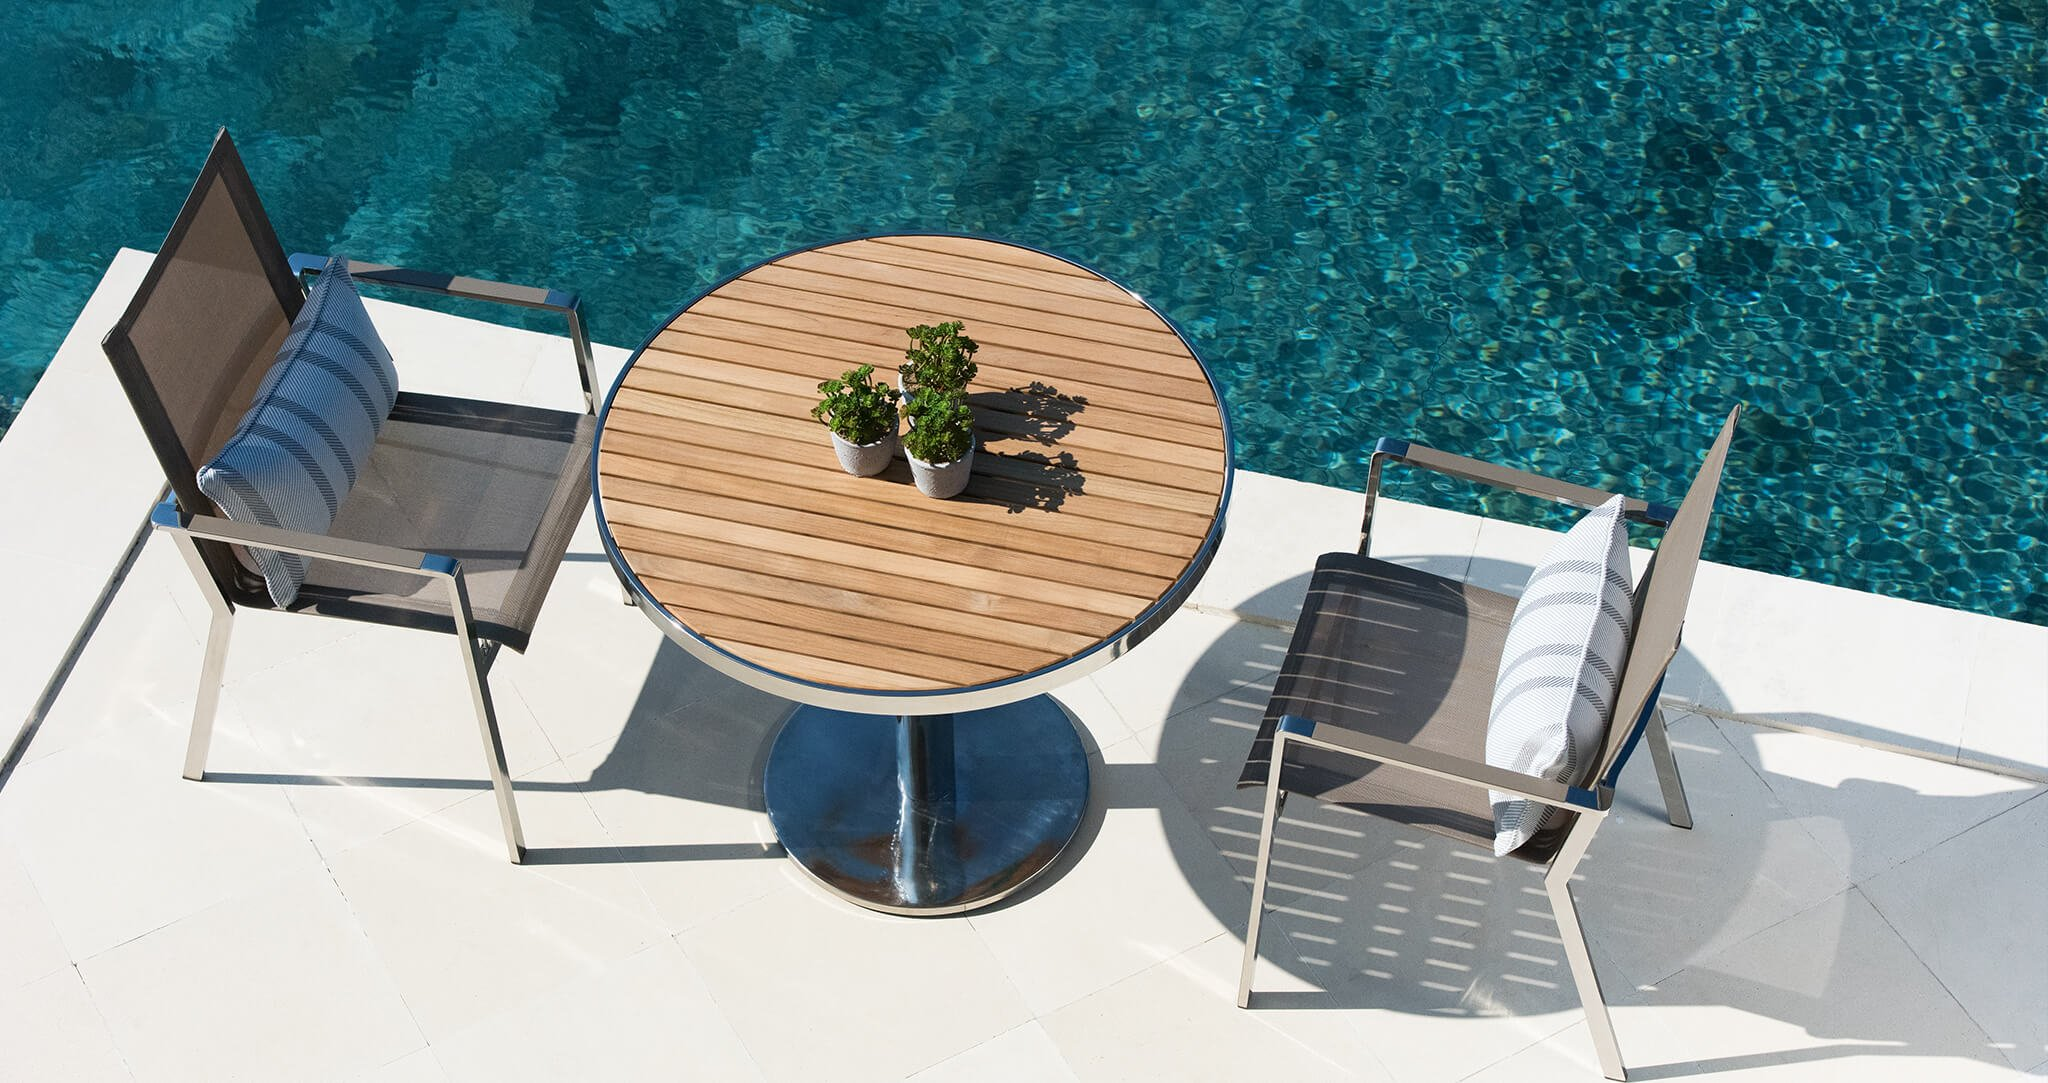 Luxury garden seating by the pool